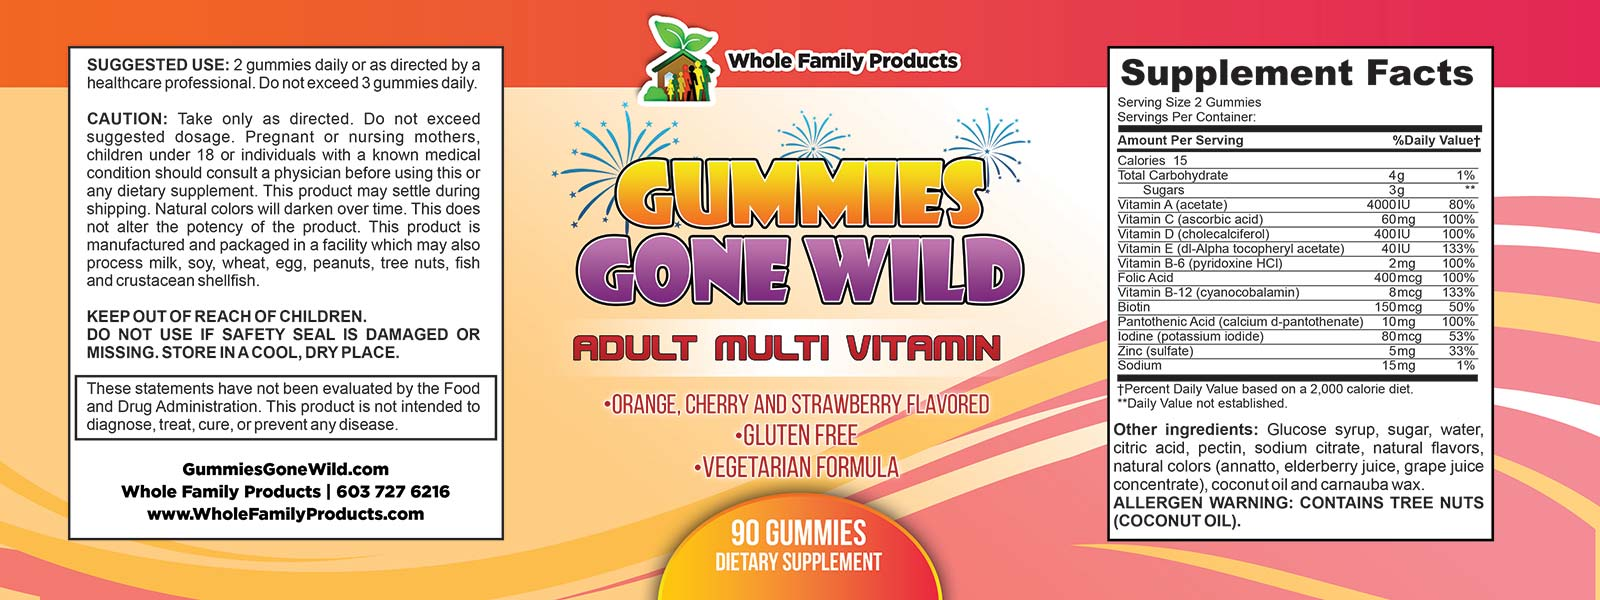 Gummies Gone Wild Adult Multi Vitamin Label